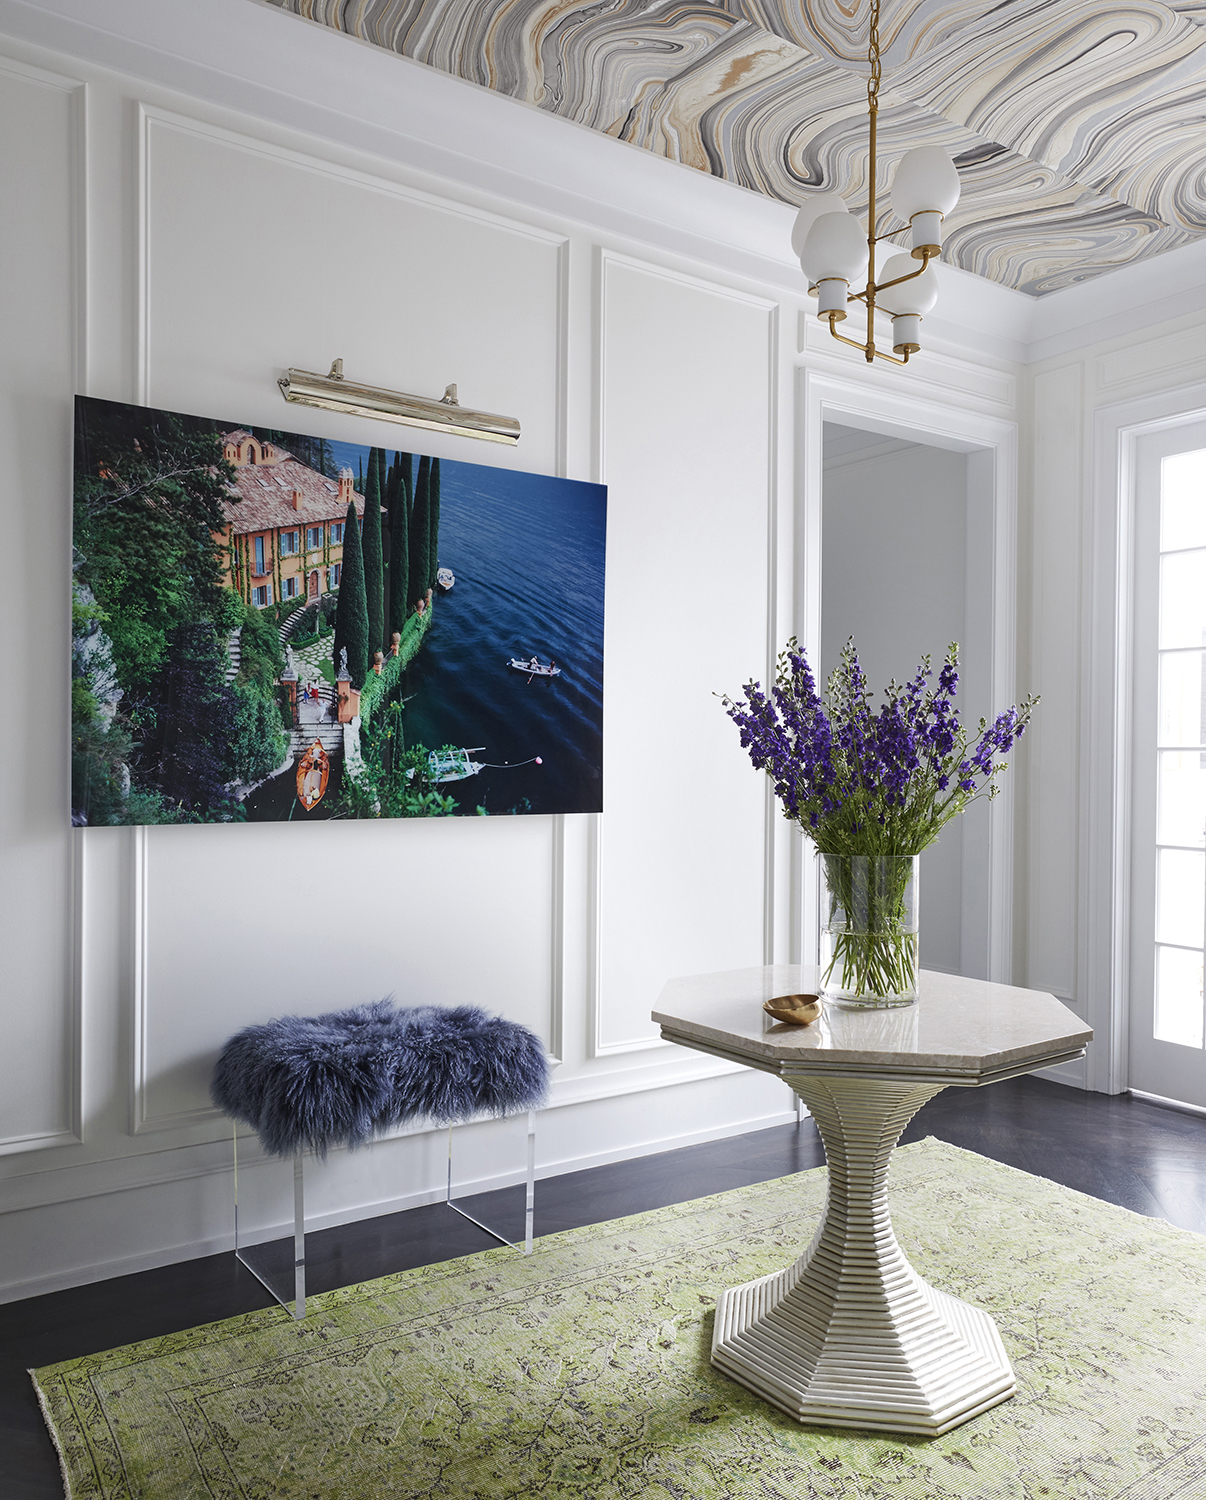 Gallery with custom print ceiling, wainscoting, and tulip pedestal table by Summer Thornton Design, Inc.